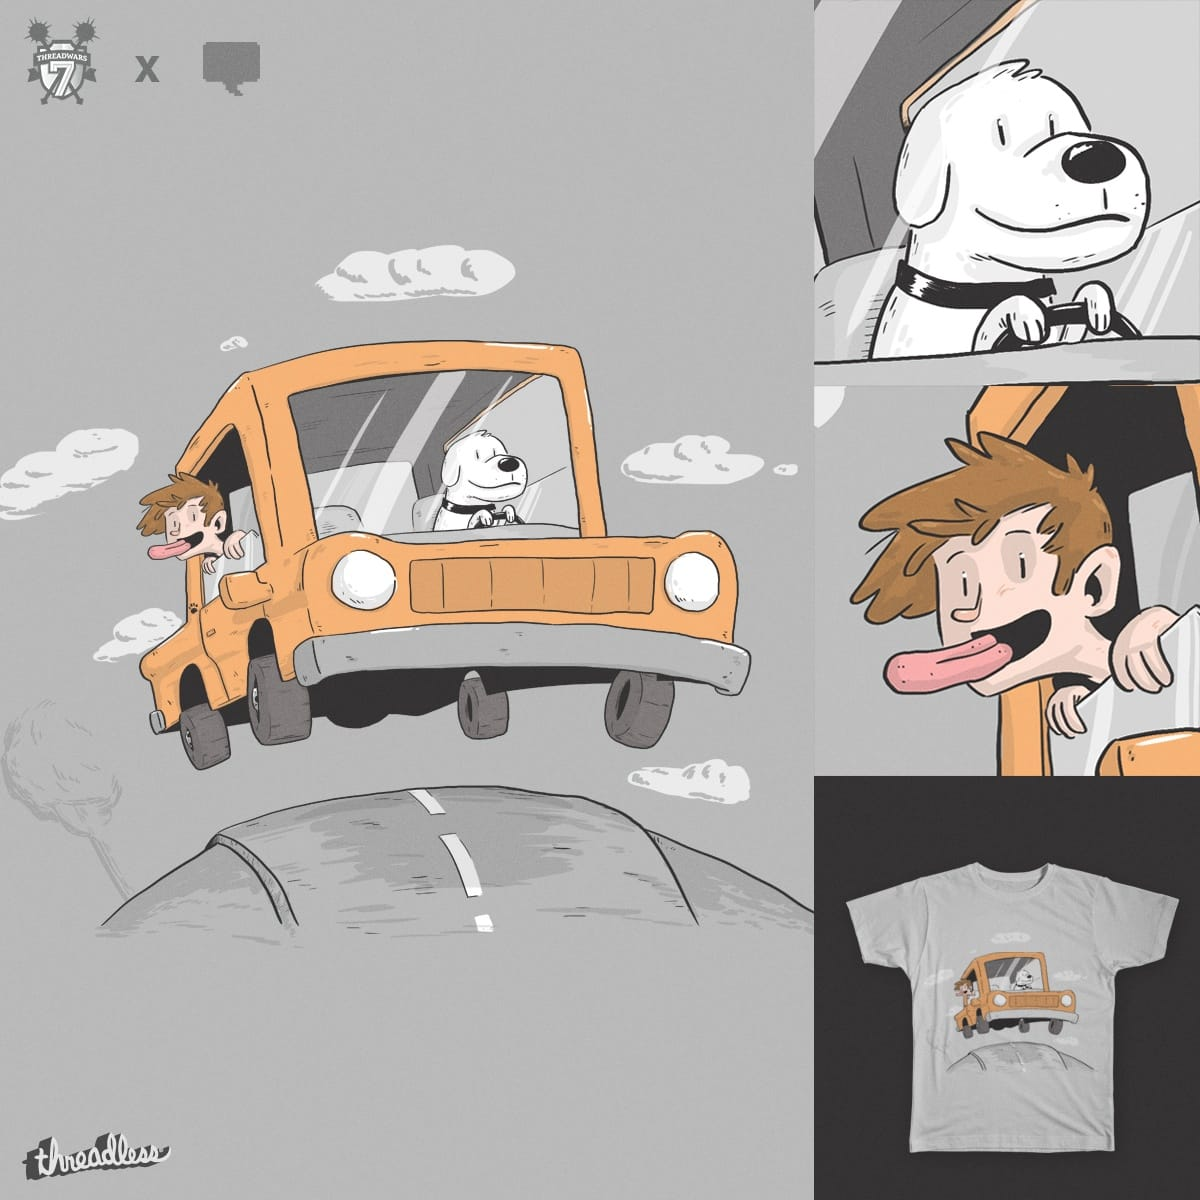 The Drive by lxromero on Threadless